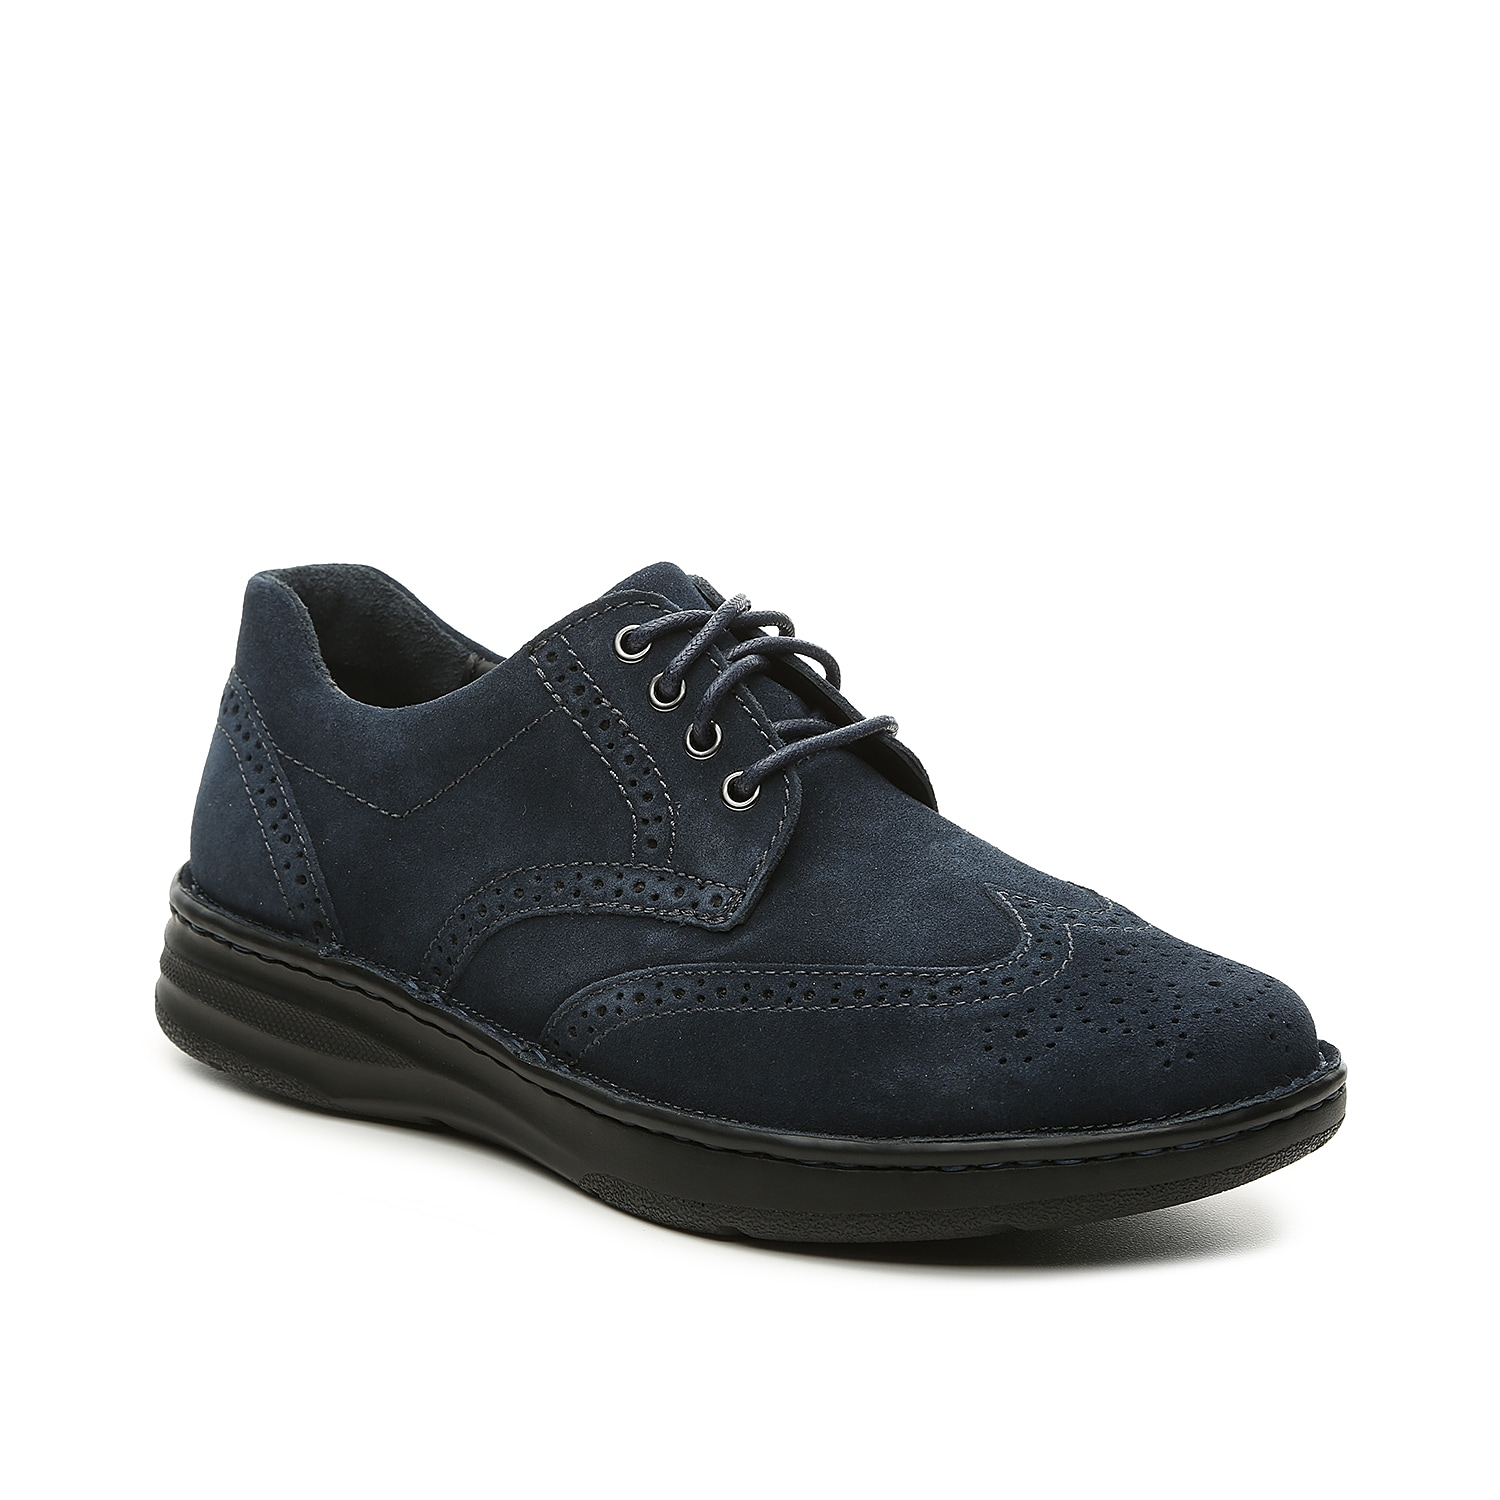 Stay comfortable while looking your best in the Delaware oxford from Drew. Brogue detailing and a suede finish promise sophistication to any outfit, while a cushioned insole feels like you\\\'re walking on air.